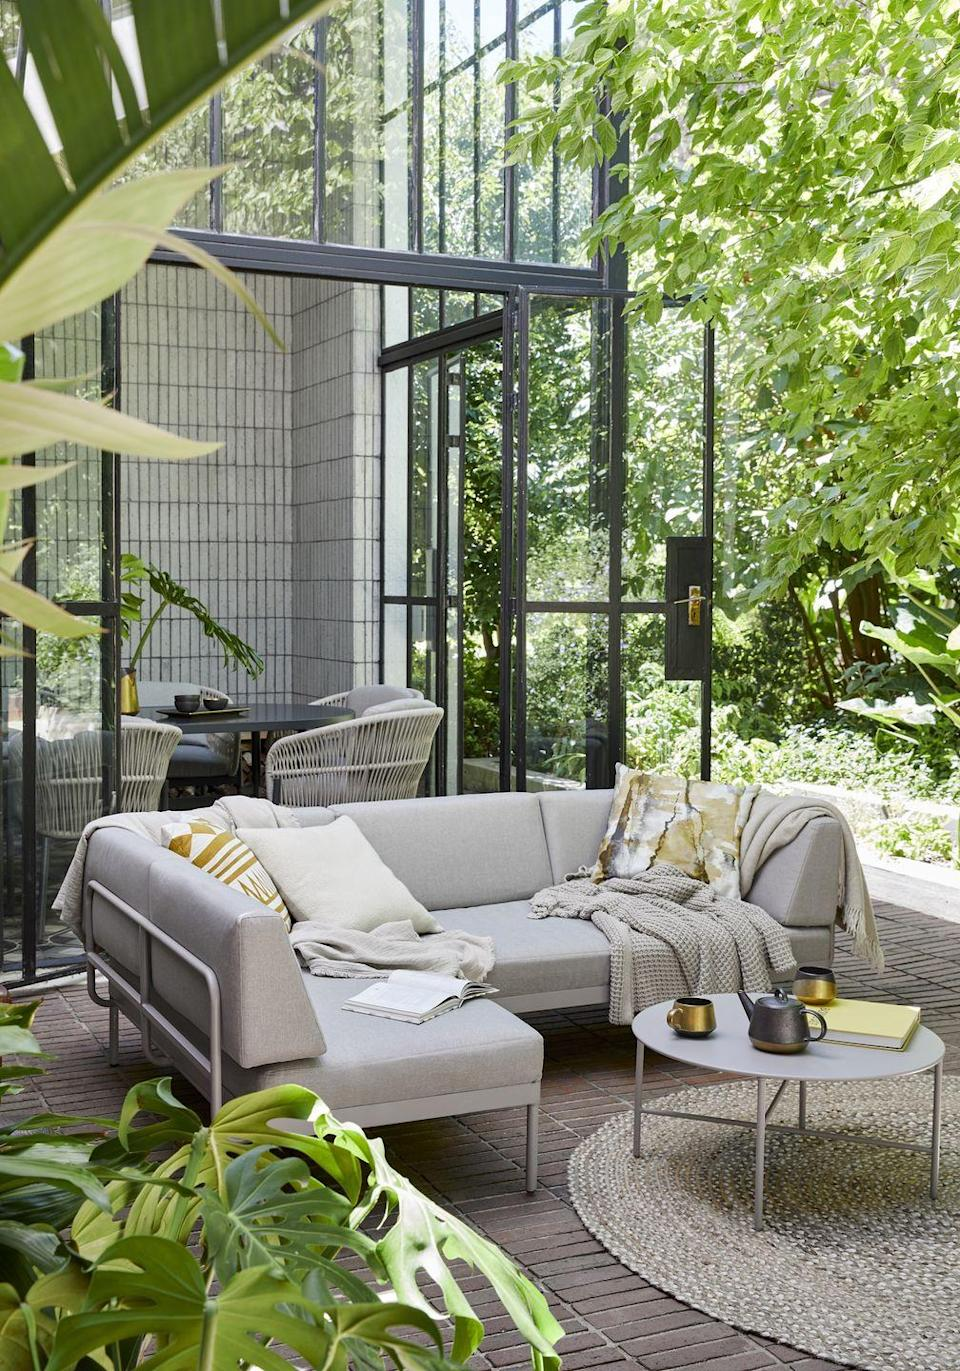 """<p>Spruce up your outdoor space with a cosy corner sofa. As we get ready to welcome six people into our gardens, why not add this one to your wish list? Complete the look with a selection of outdoor cushions and a string of glistening festoon lights. </p><p><a class=""""link rapid-noclick-resp"""" href=""""https://go.redirectingat.com?id=127X1599956&url=https%3A%2F%2Fwww.johnlewis.com%2Fbrowse%2Ffurniture-lights%2Fgarden%2Fgarden-furniture-sets%2Fgarden-sofa-sets%2F_%2FN-5unsZ1yzi23x&sref=https%3A%2F%2Fwww.countryliving.com%2Fuk%2Fhomes-interiors%2Fgardens%2Fg35933581%2Fjohn-lewis-garden-collection-spring-summer%2F"""" rel=""""nofollow noopener"""" target=""""_blank"""" data-ylk=""""slk:SHOP NOW"""">SHOP NOW</a></p>"""